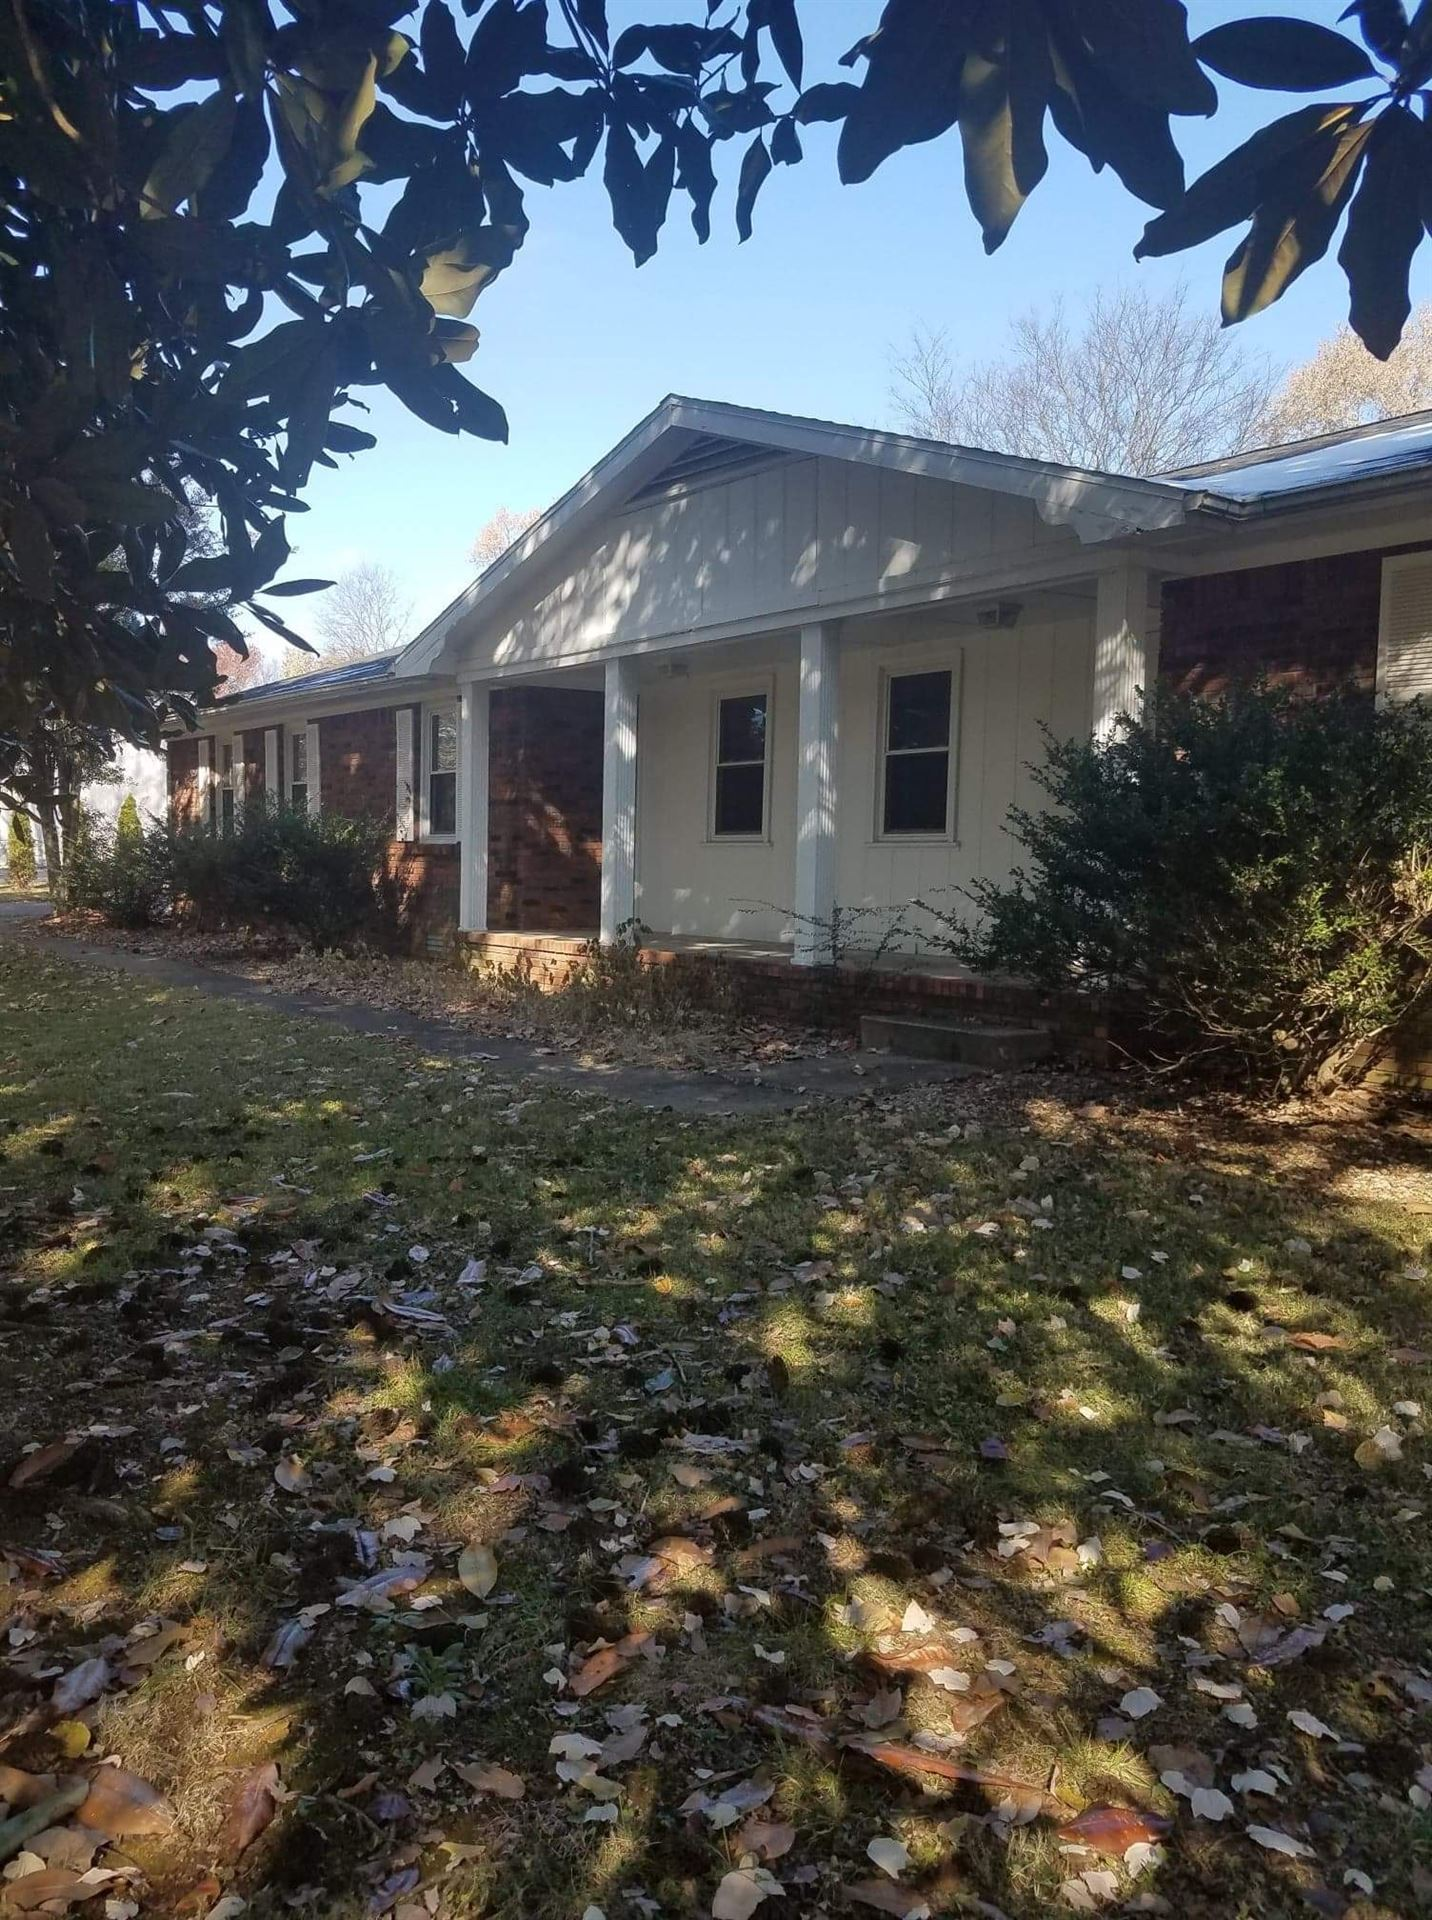 112 Country Club Ln, Hopkinsville, KY 42240 - MLS#: 2249981